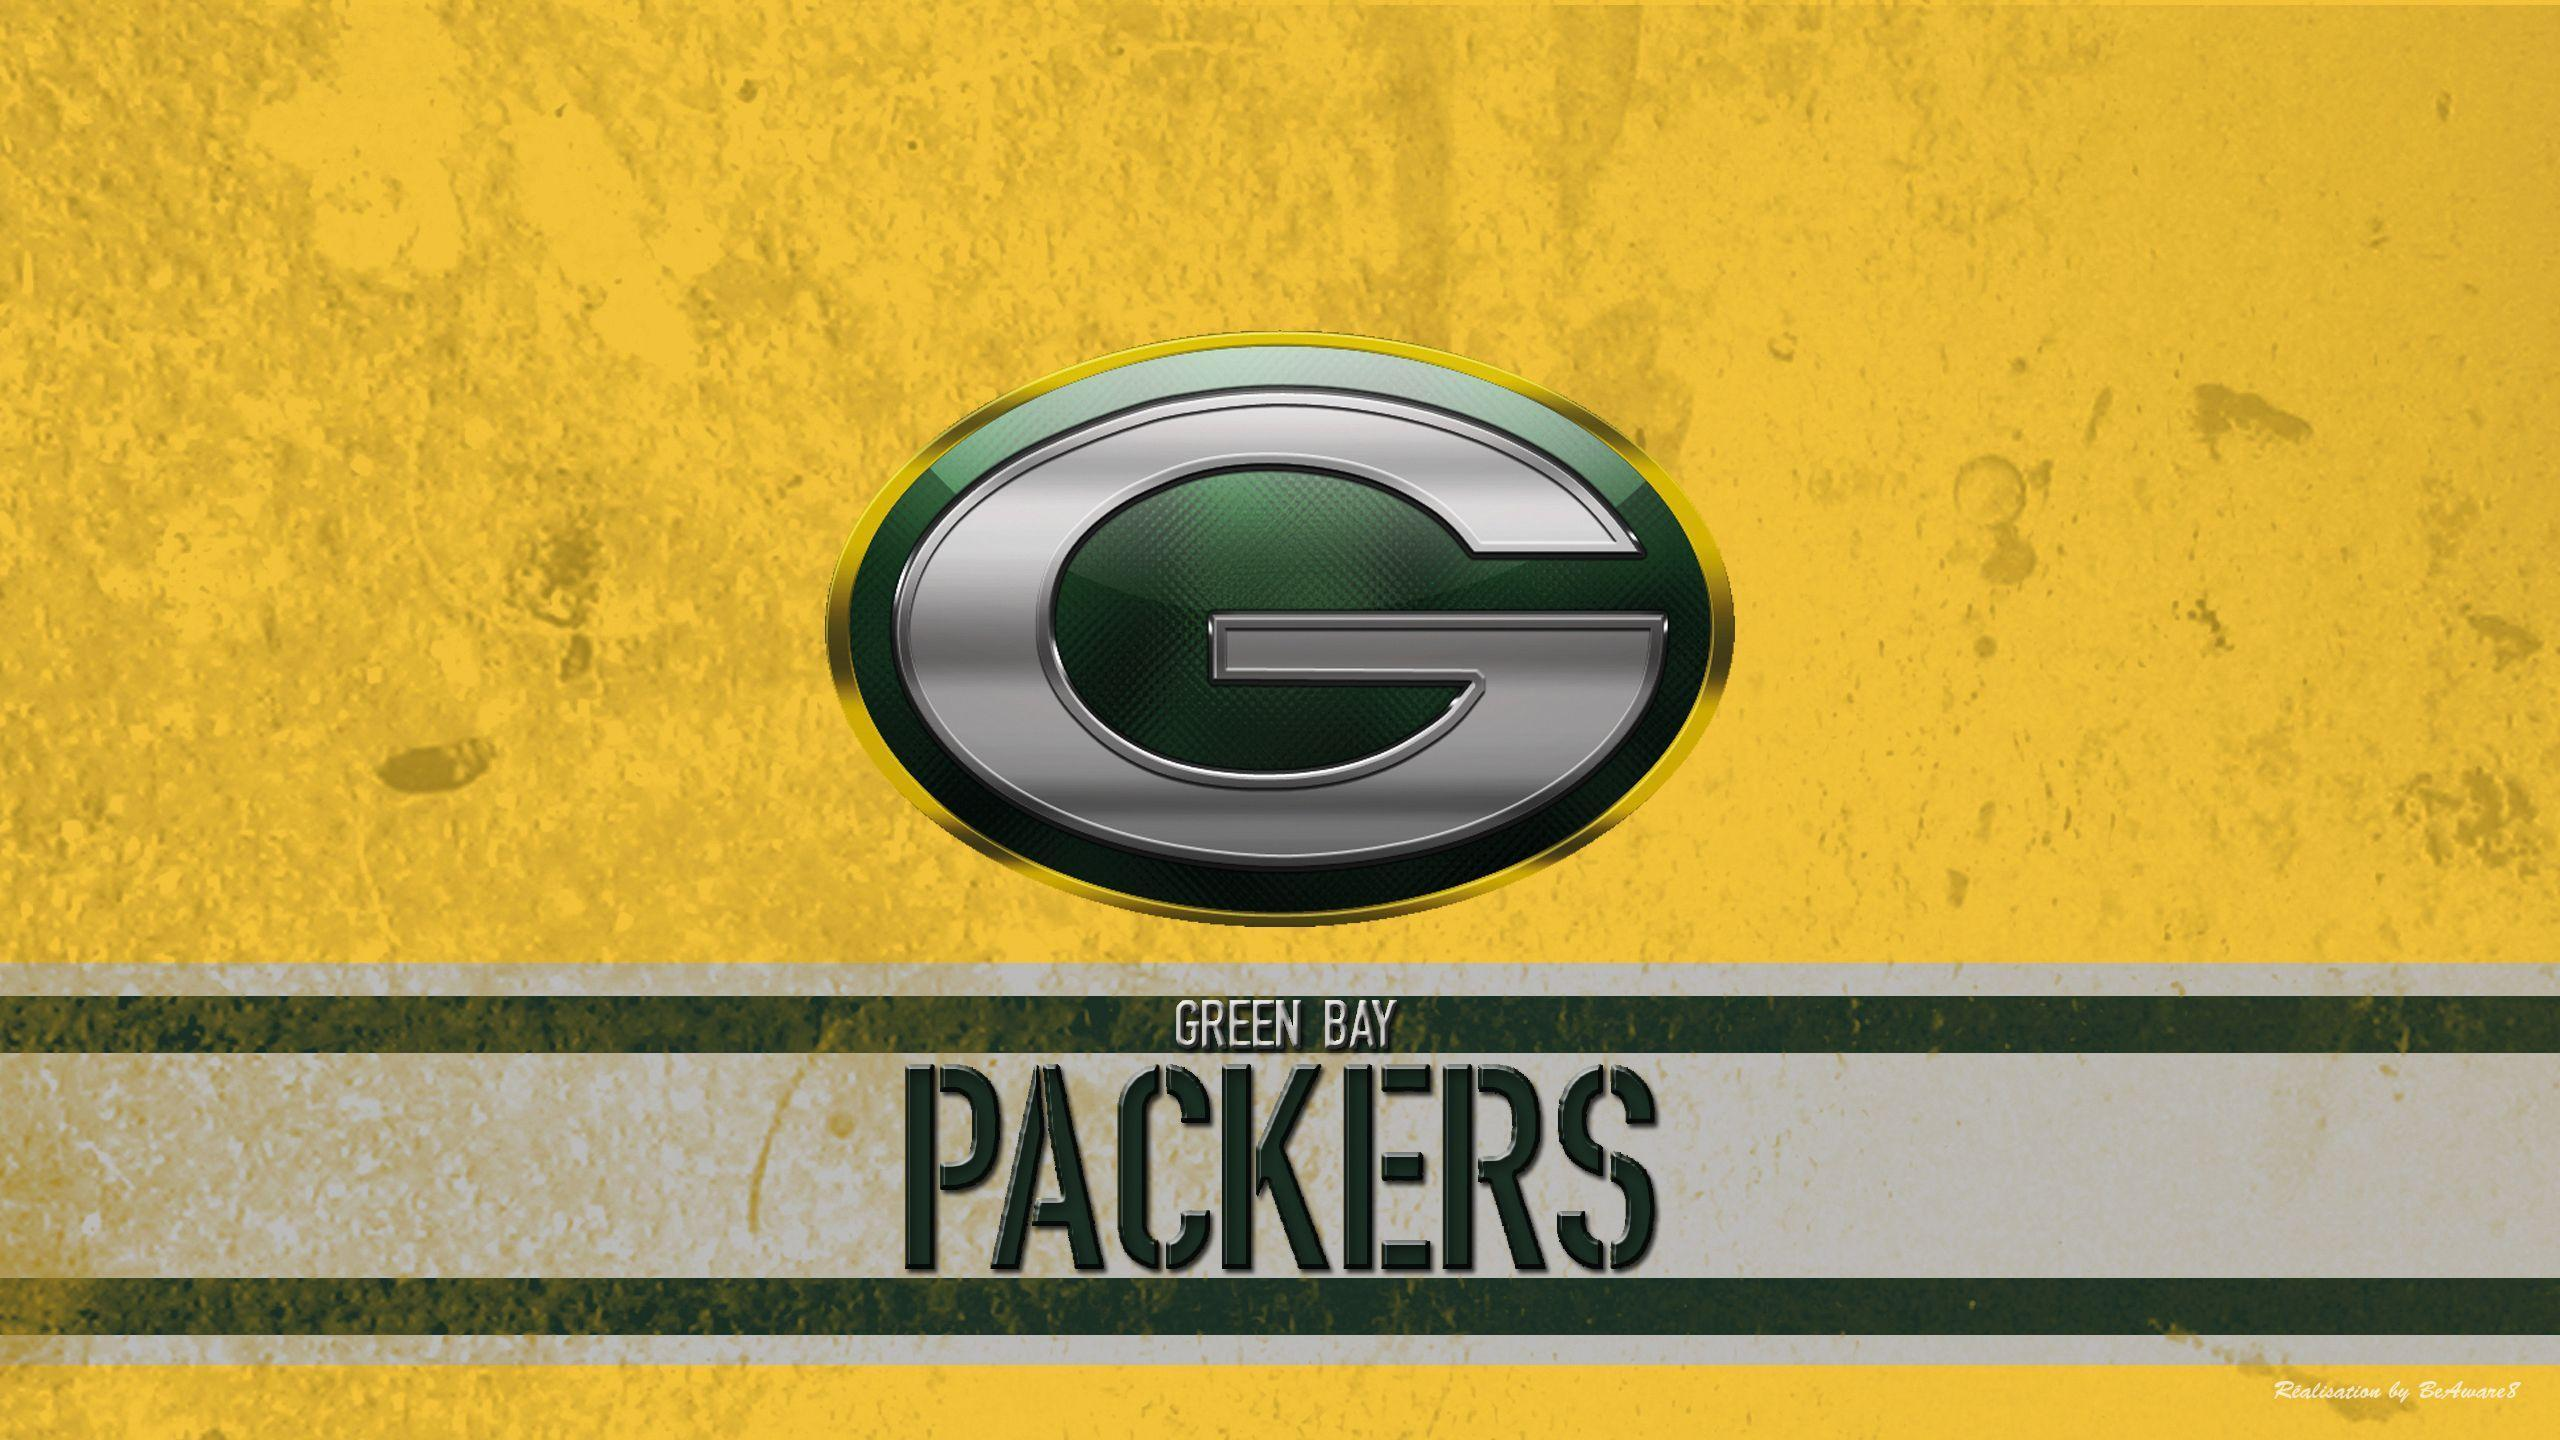 Green bay packers wallpaper, Bays and Art